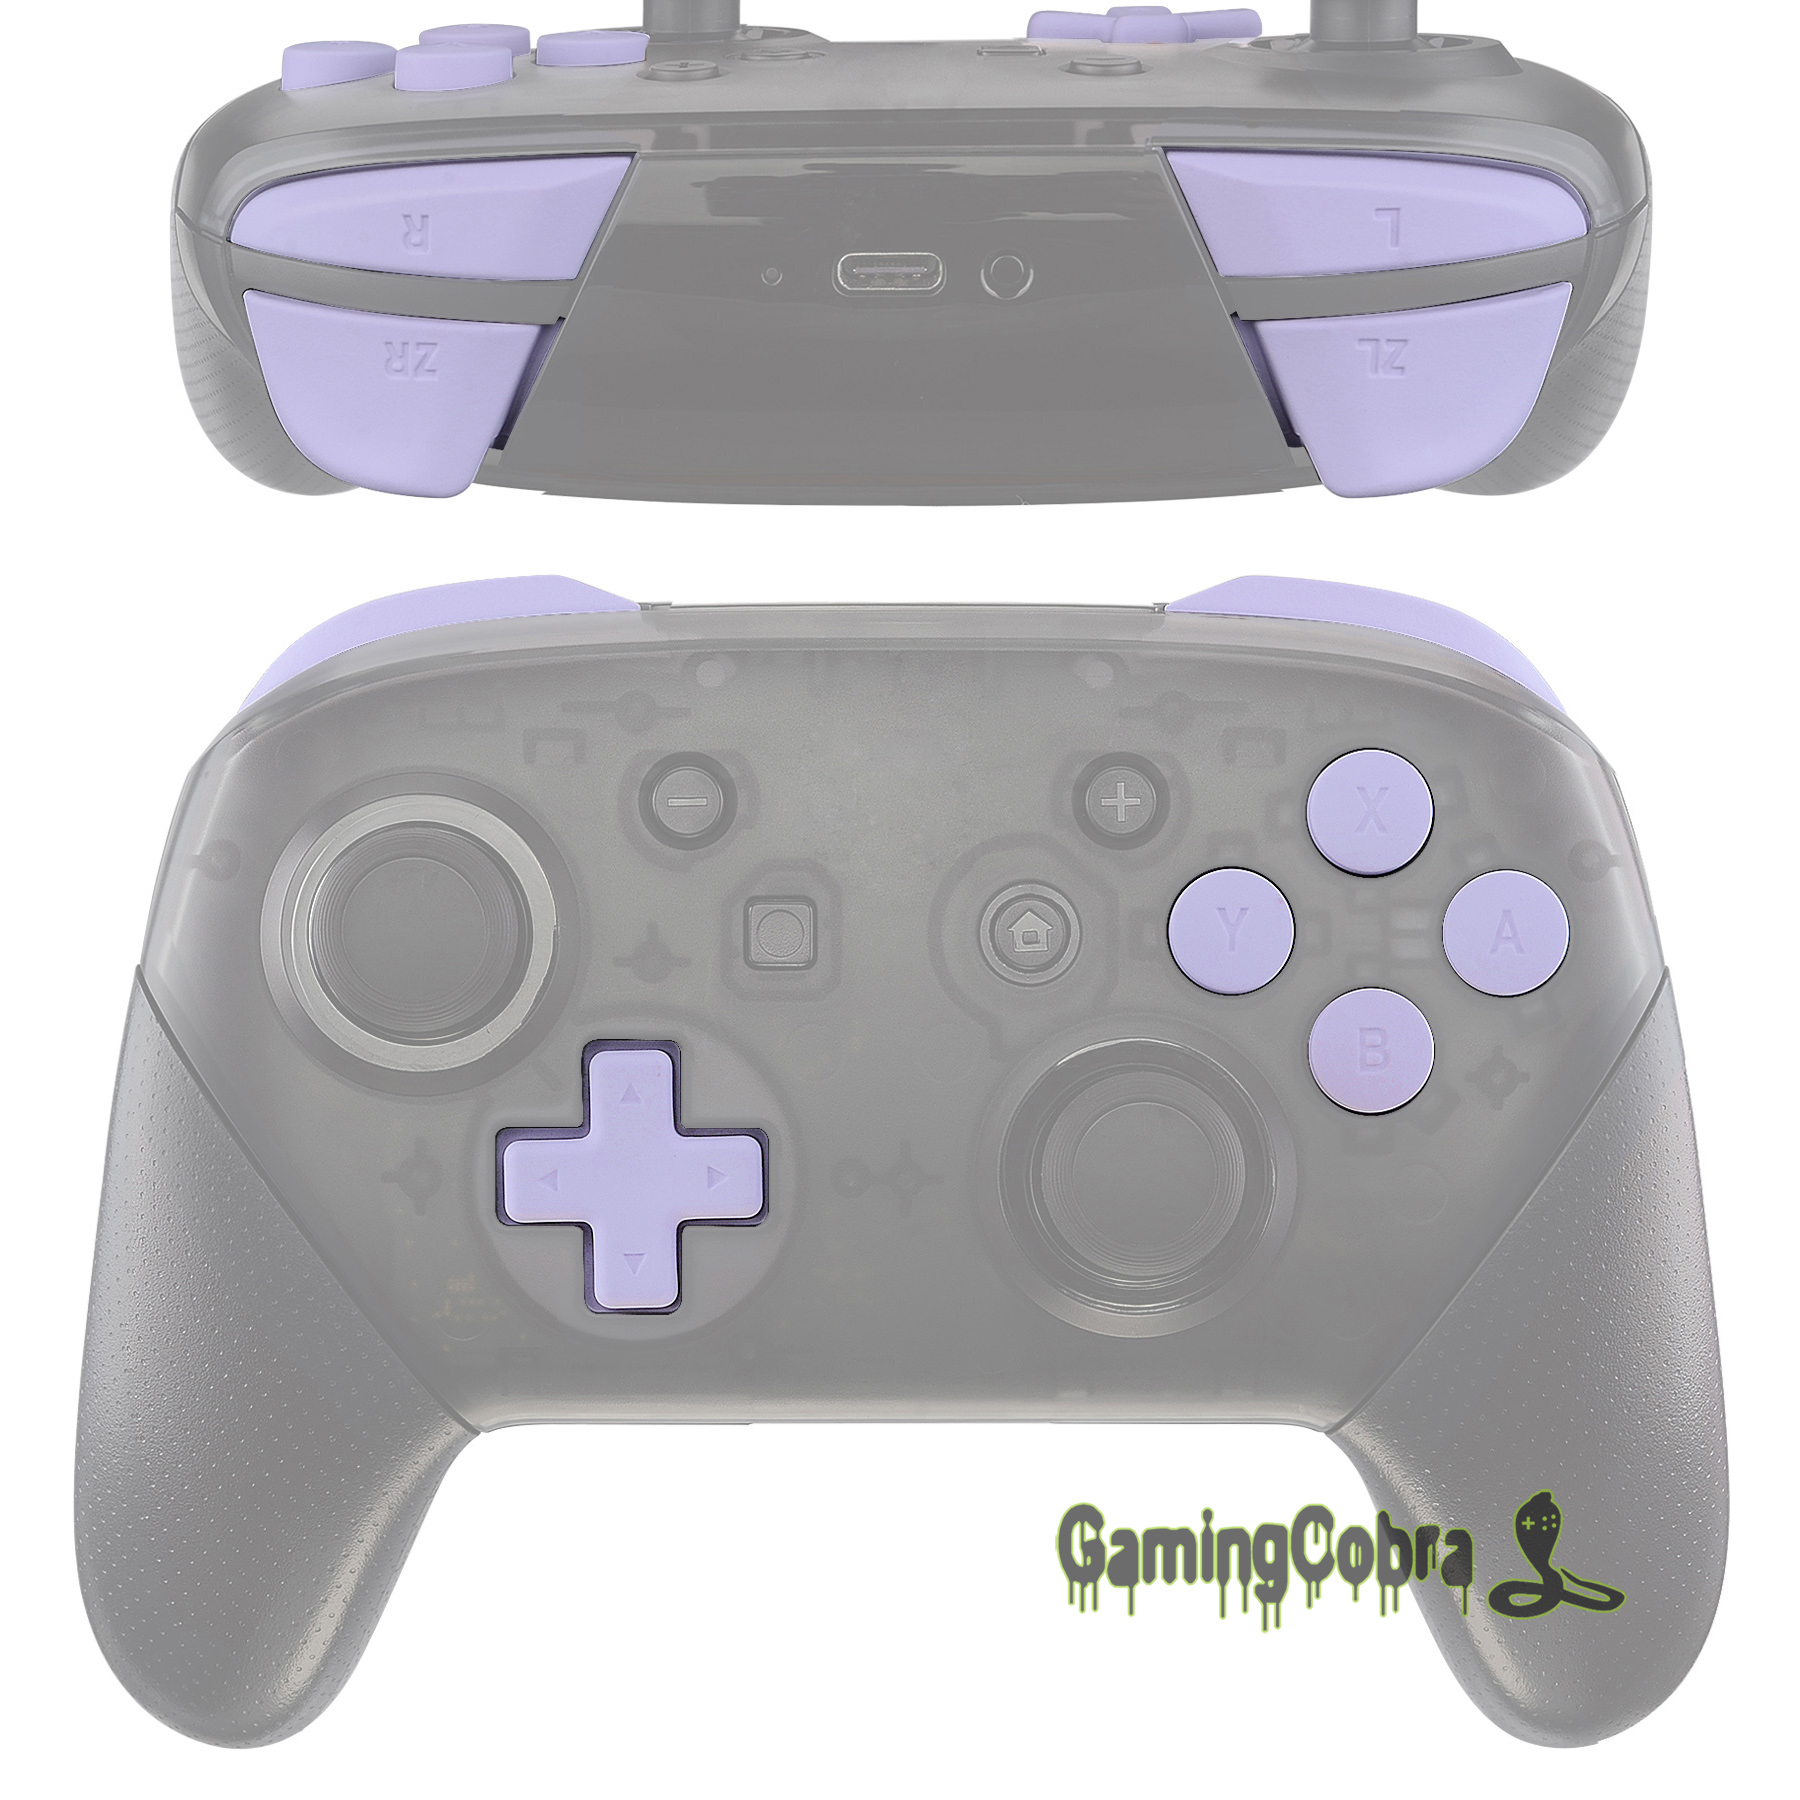 Soft Touch Light Violet Repair ABXY D-pad ZR ZL L R Keys Full Set Buttons w/ Tools for Nintendo Switch Pro Controller